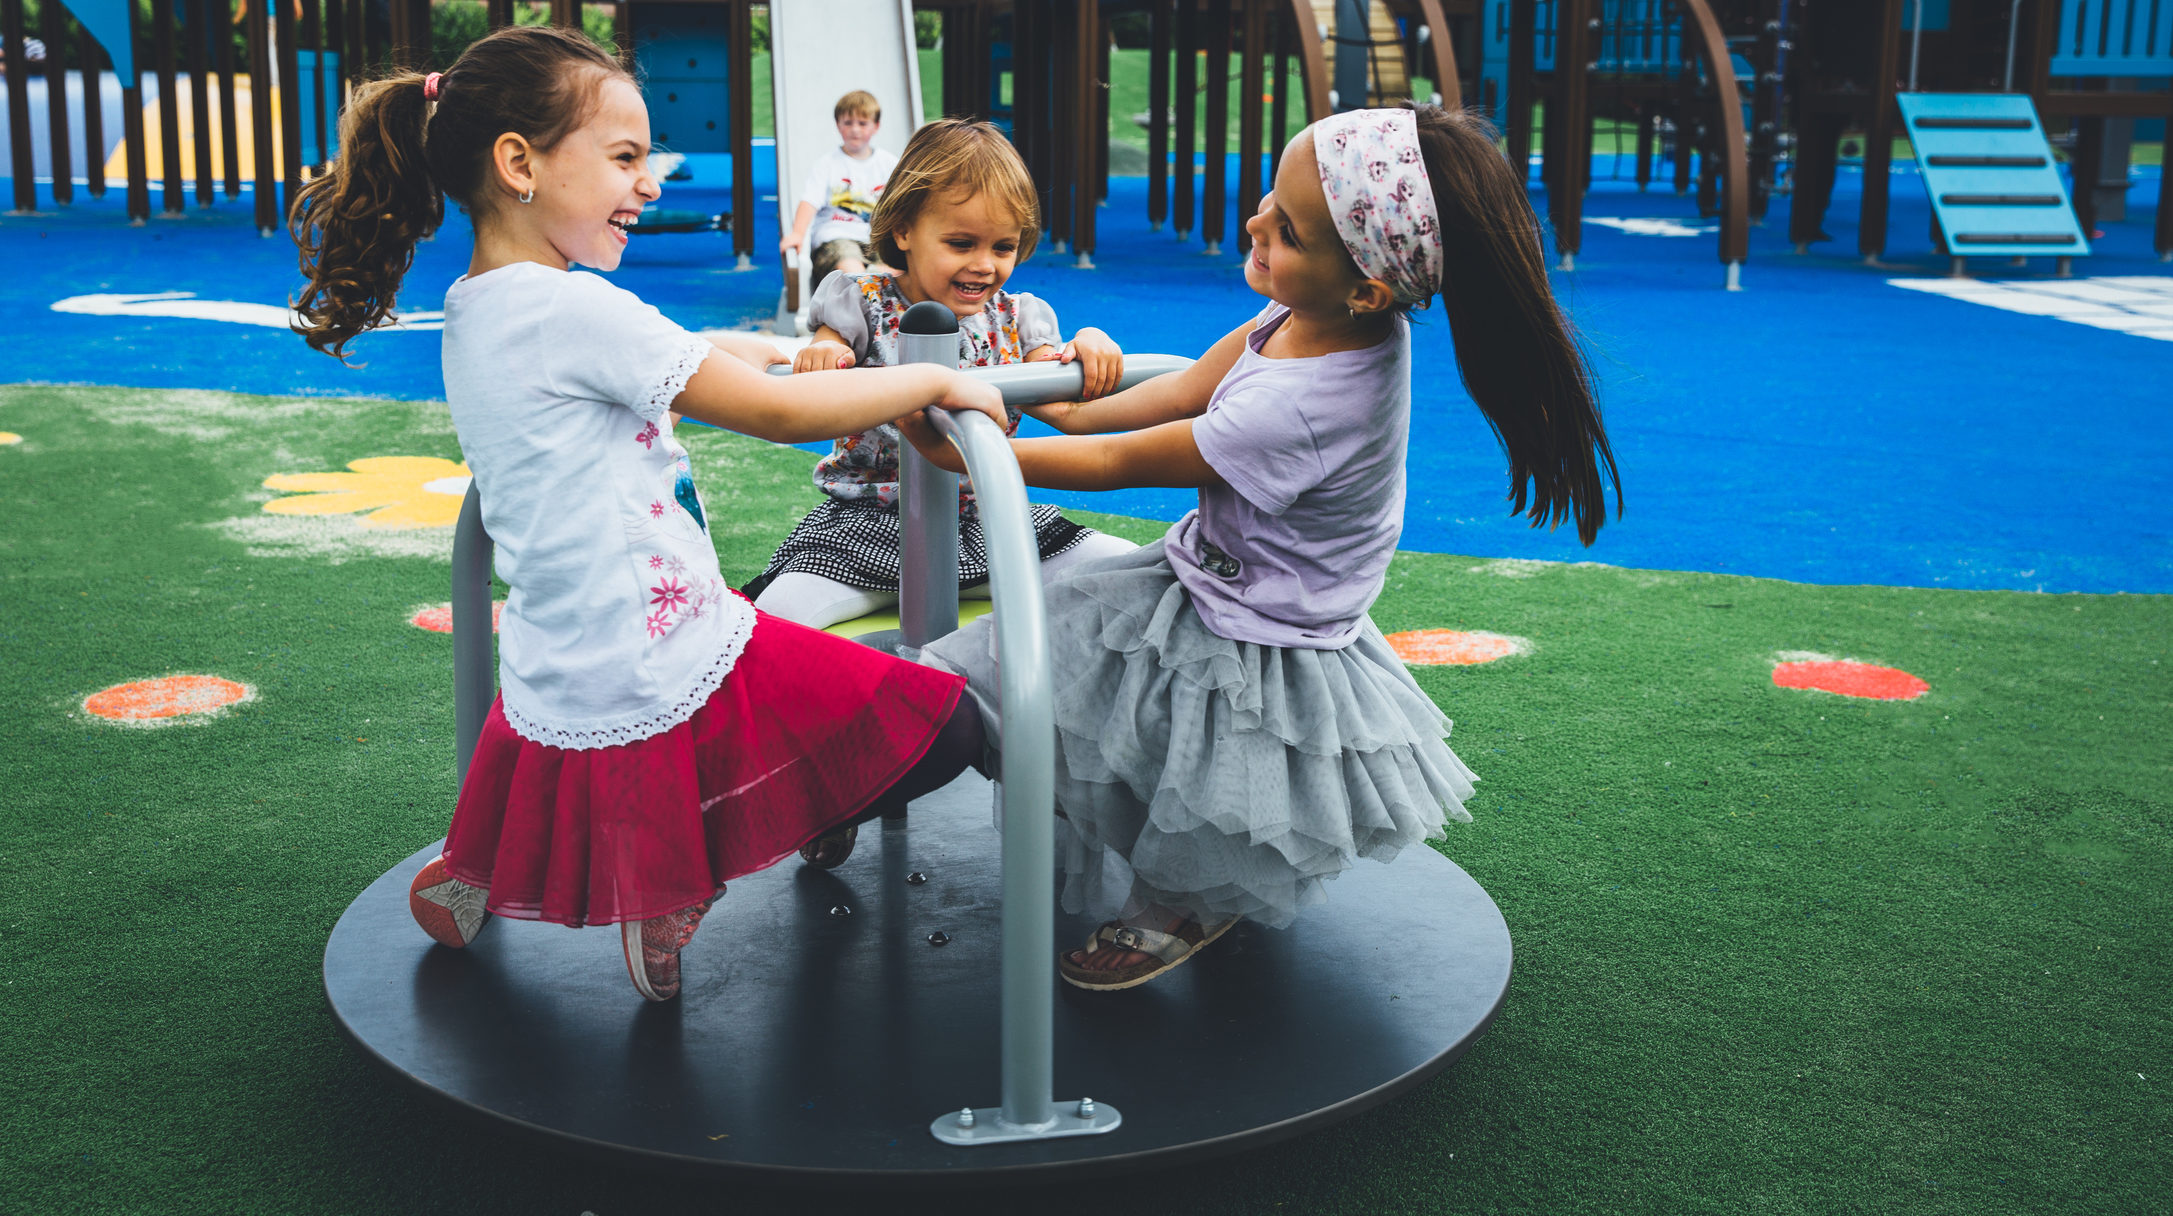 playground roundabout with 3 children playing